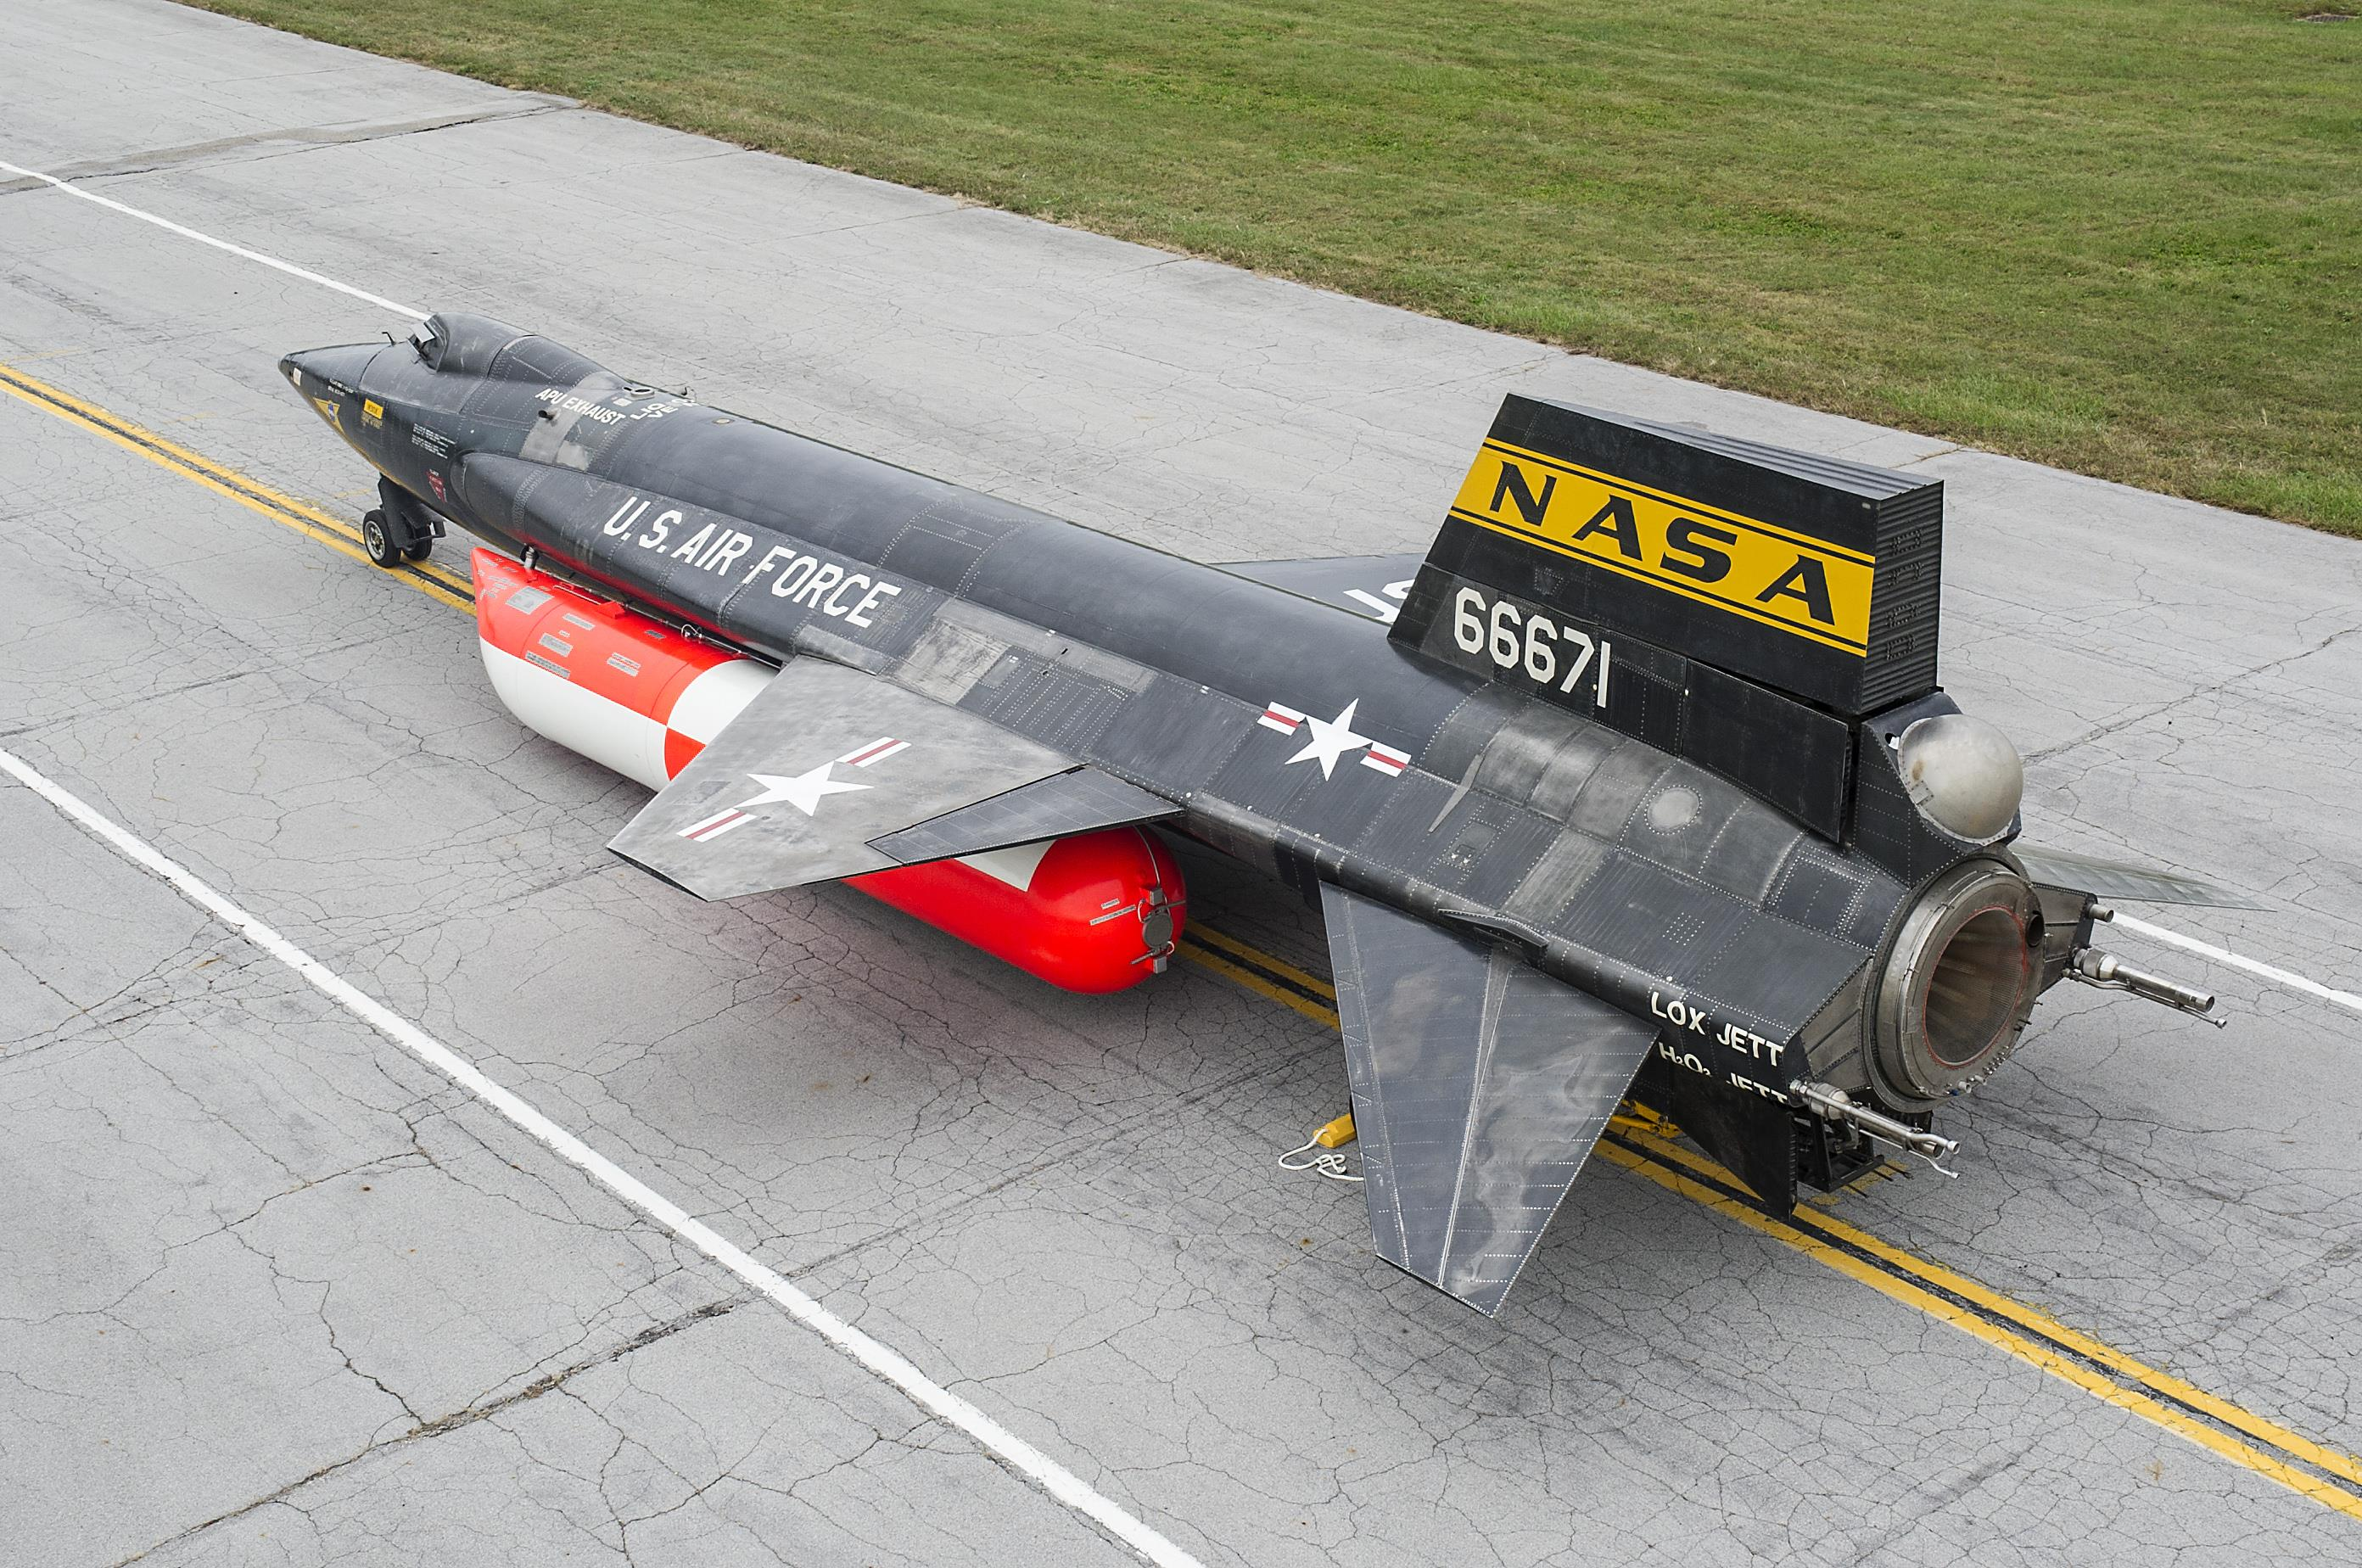 X-15: The Other Spaceplane - Tested